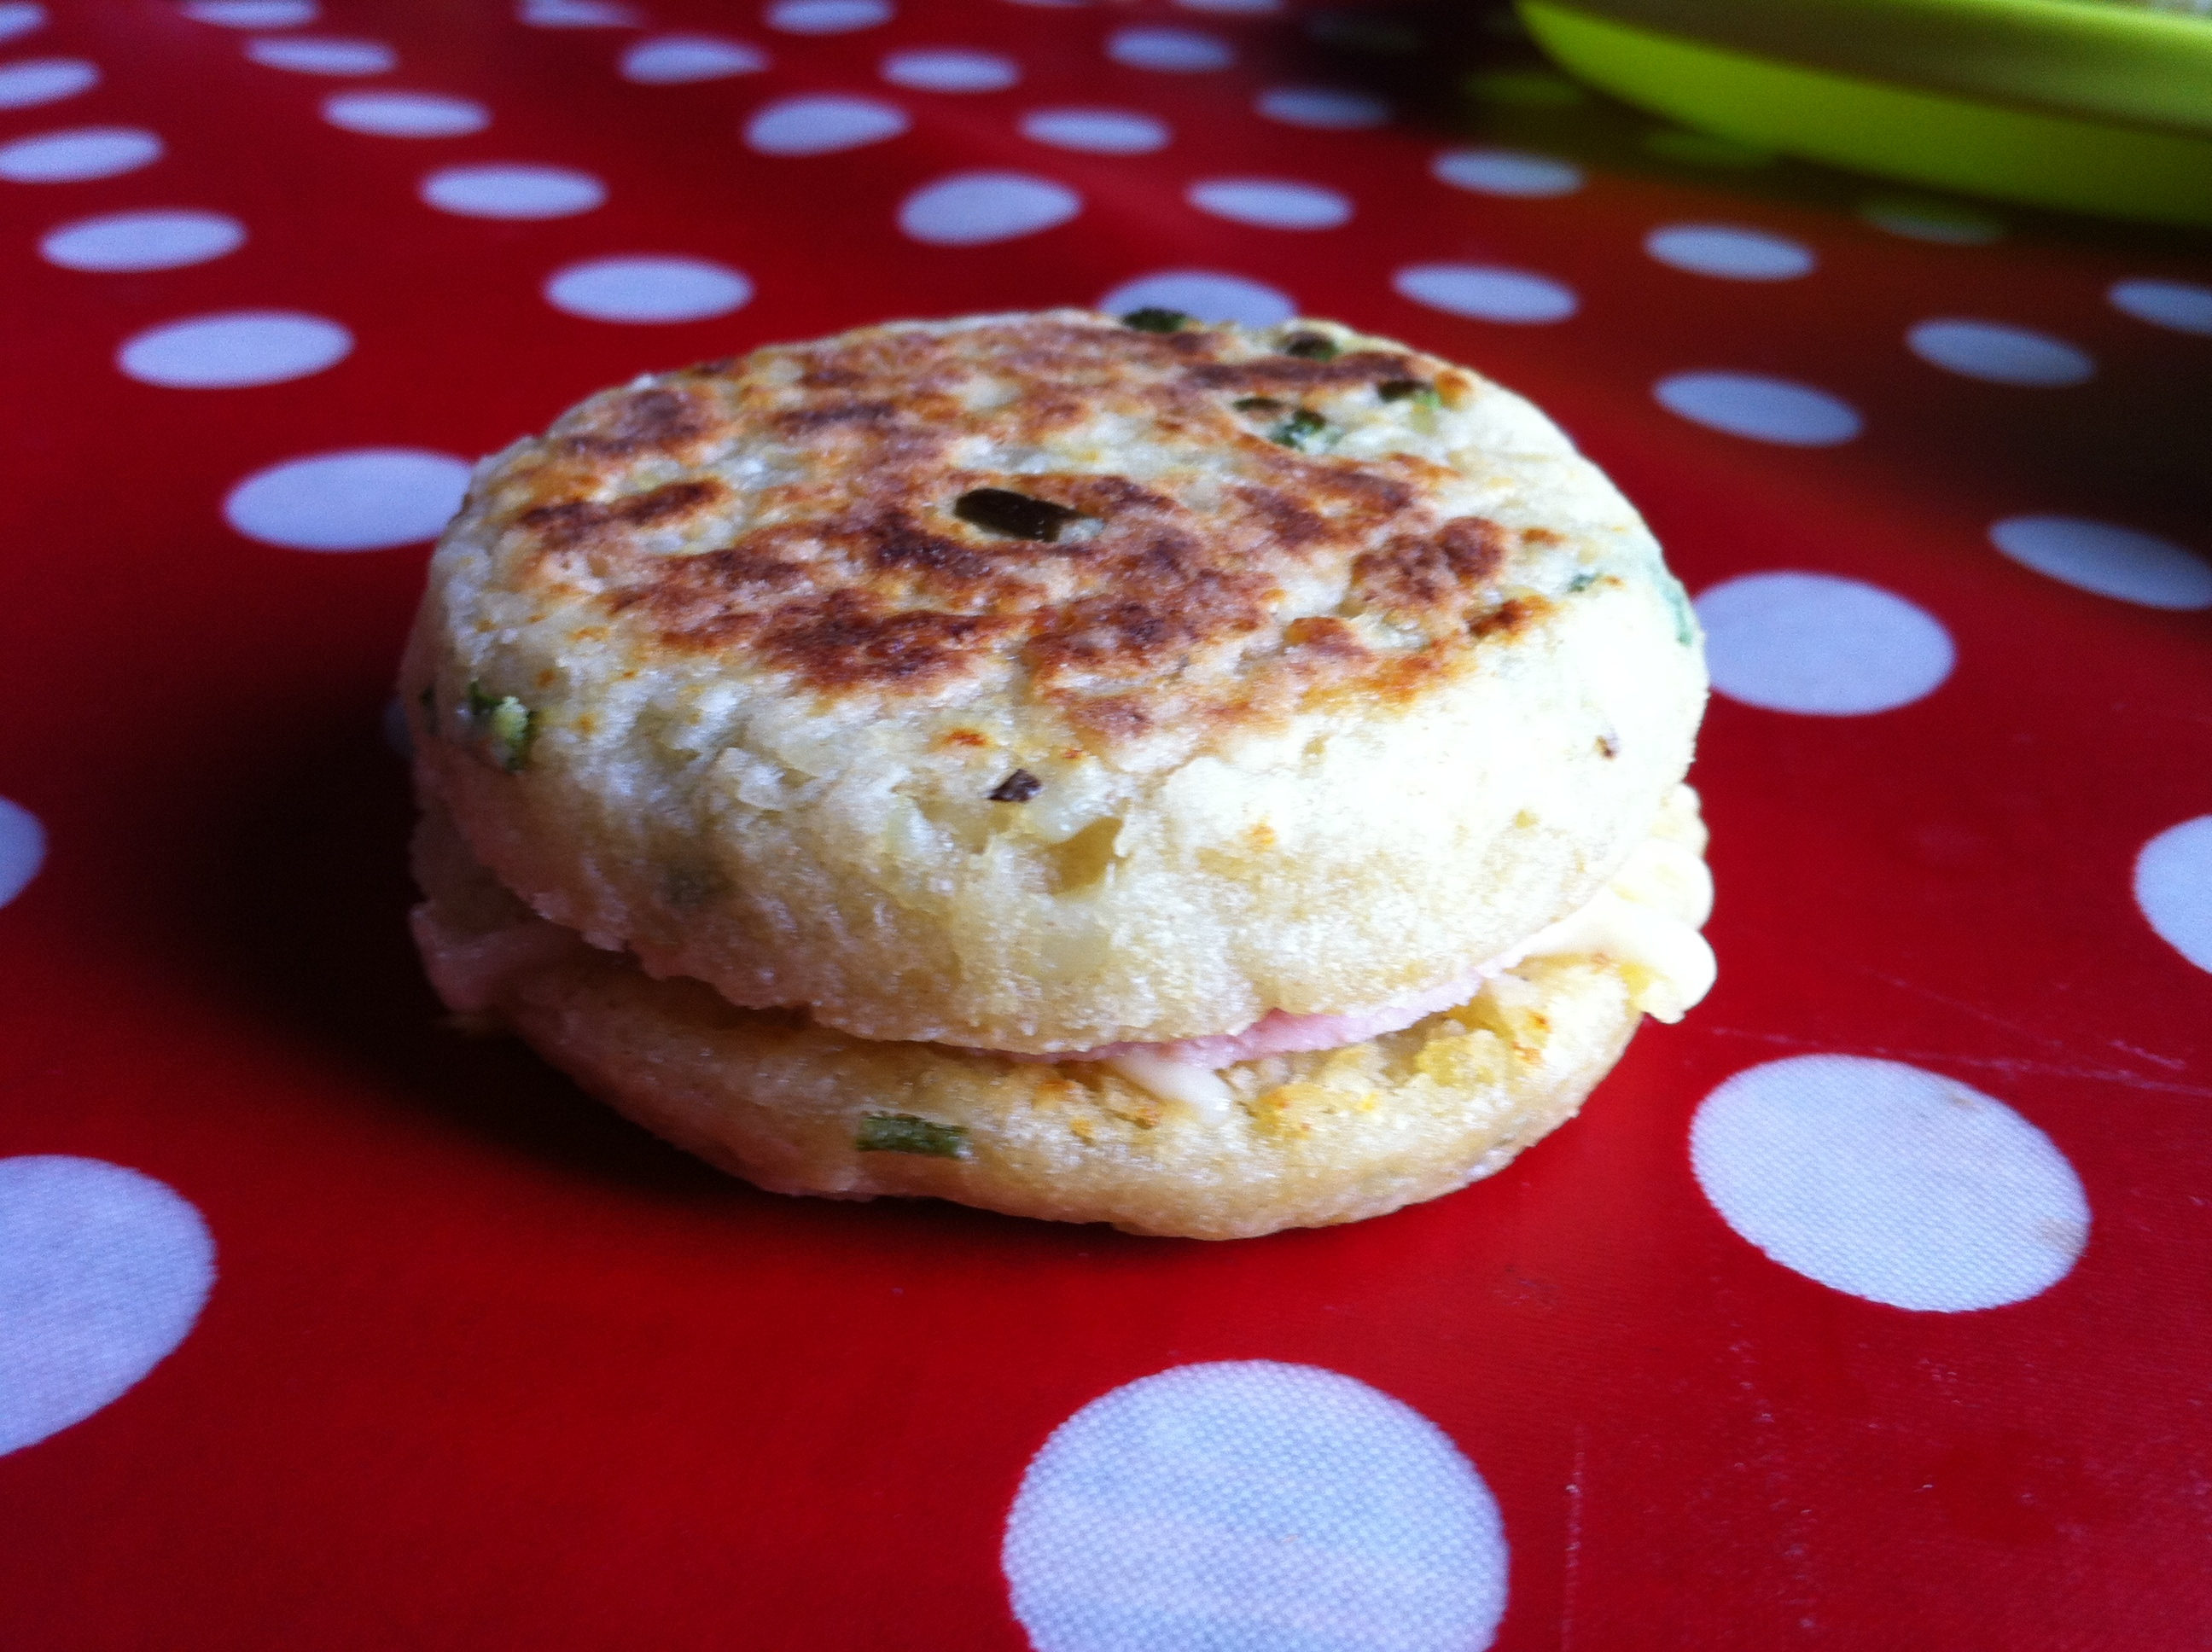 potatoe scone